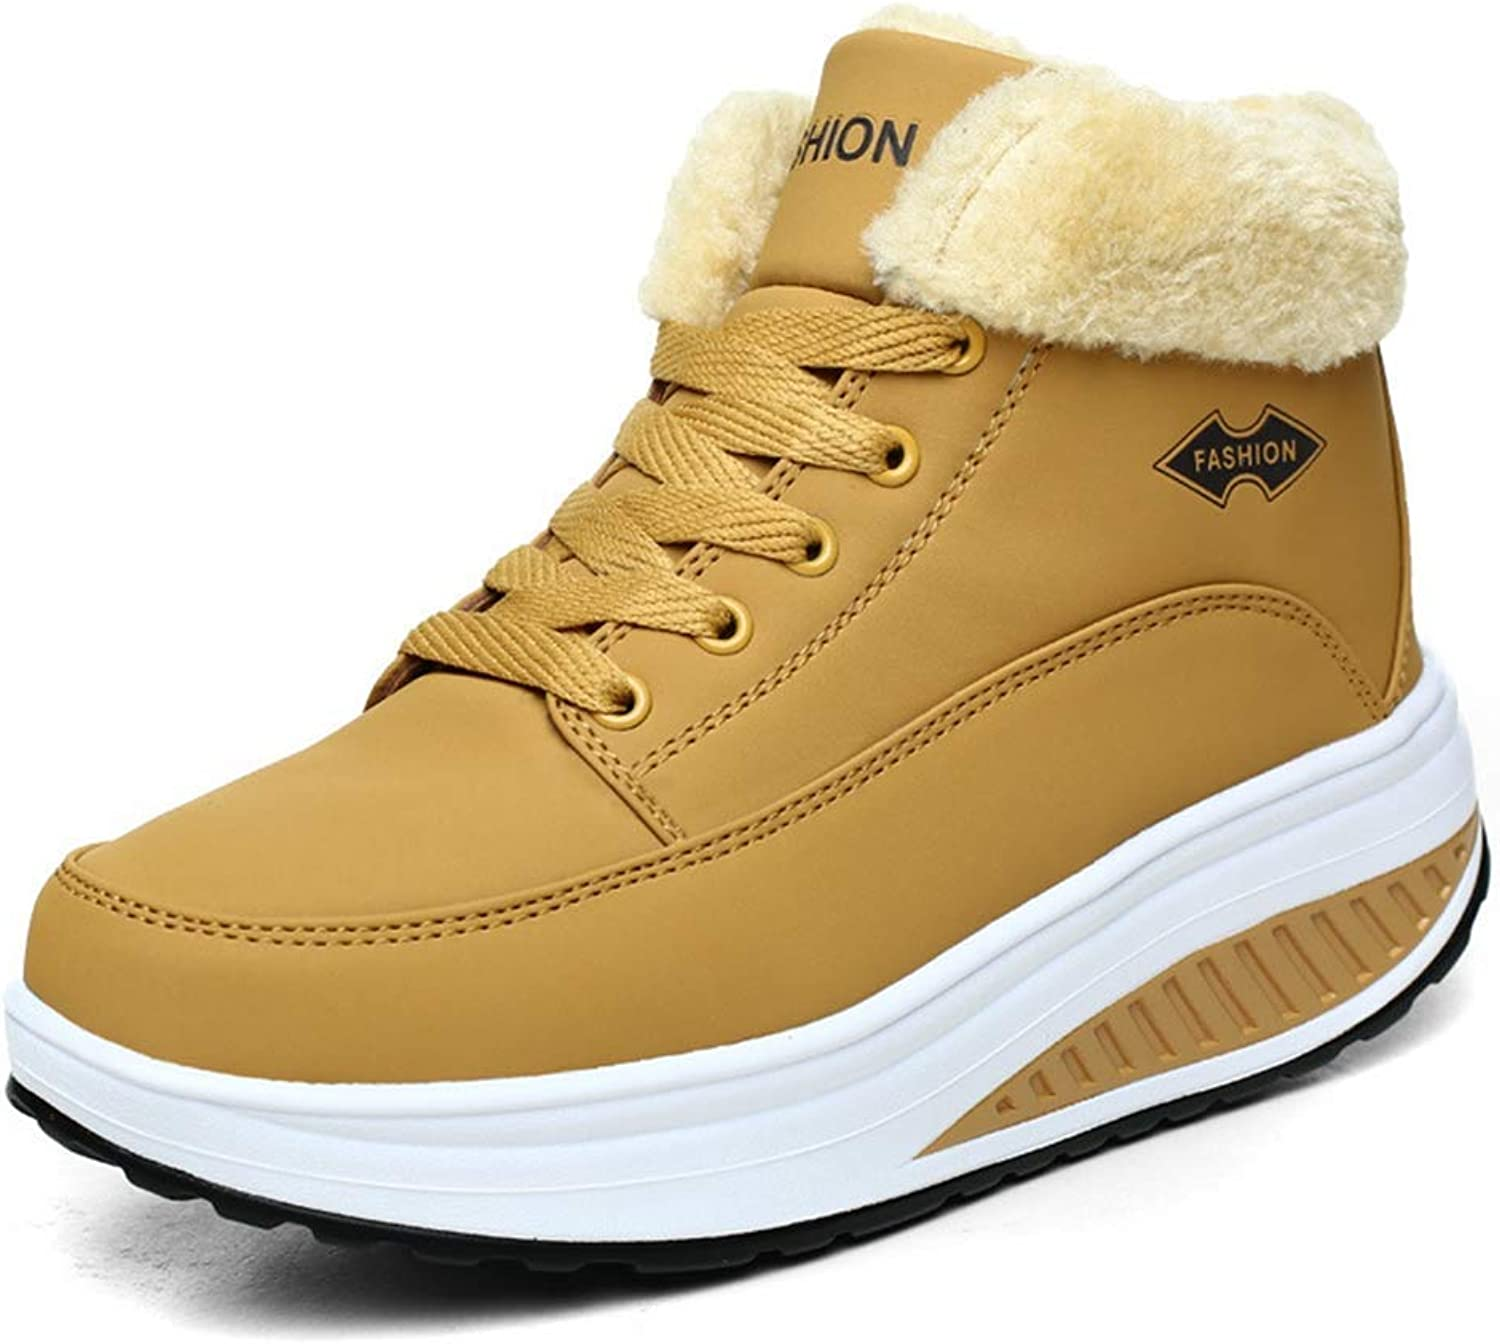 BMTH Women Waterproof Outdoor Snow Boots Fur Lined Non-Slip Athletic Sneaker Winter shoes Walking shoes